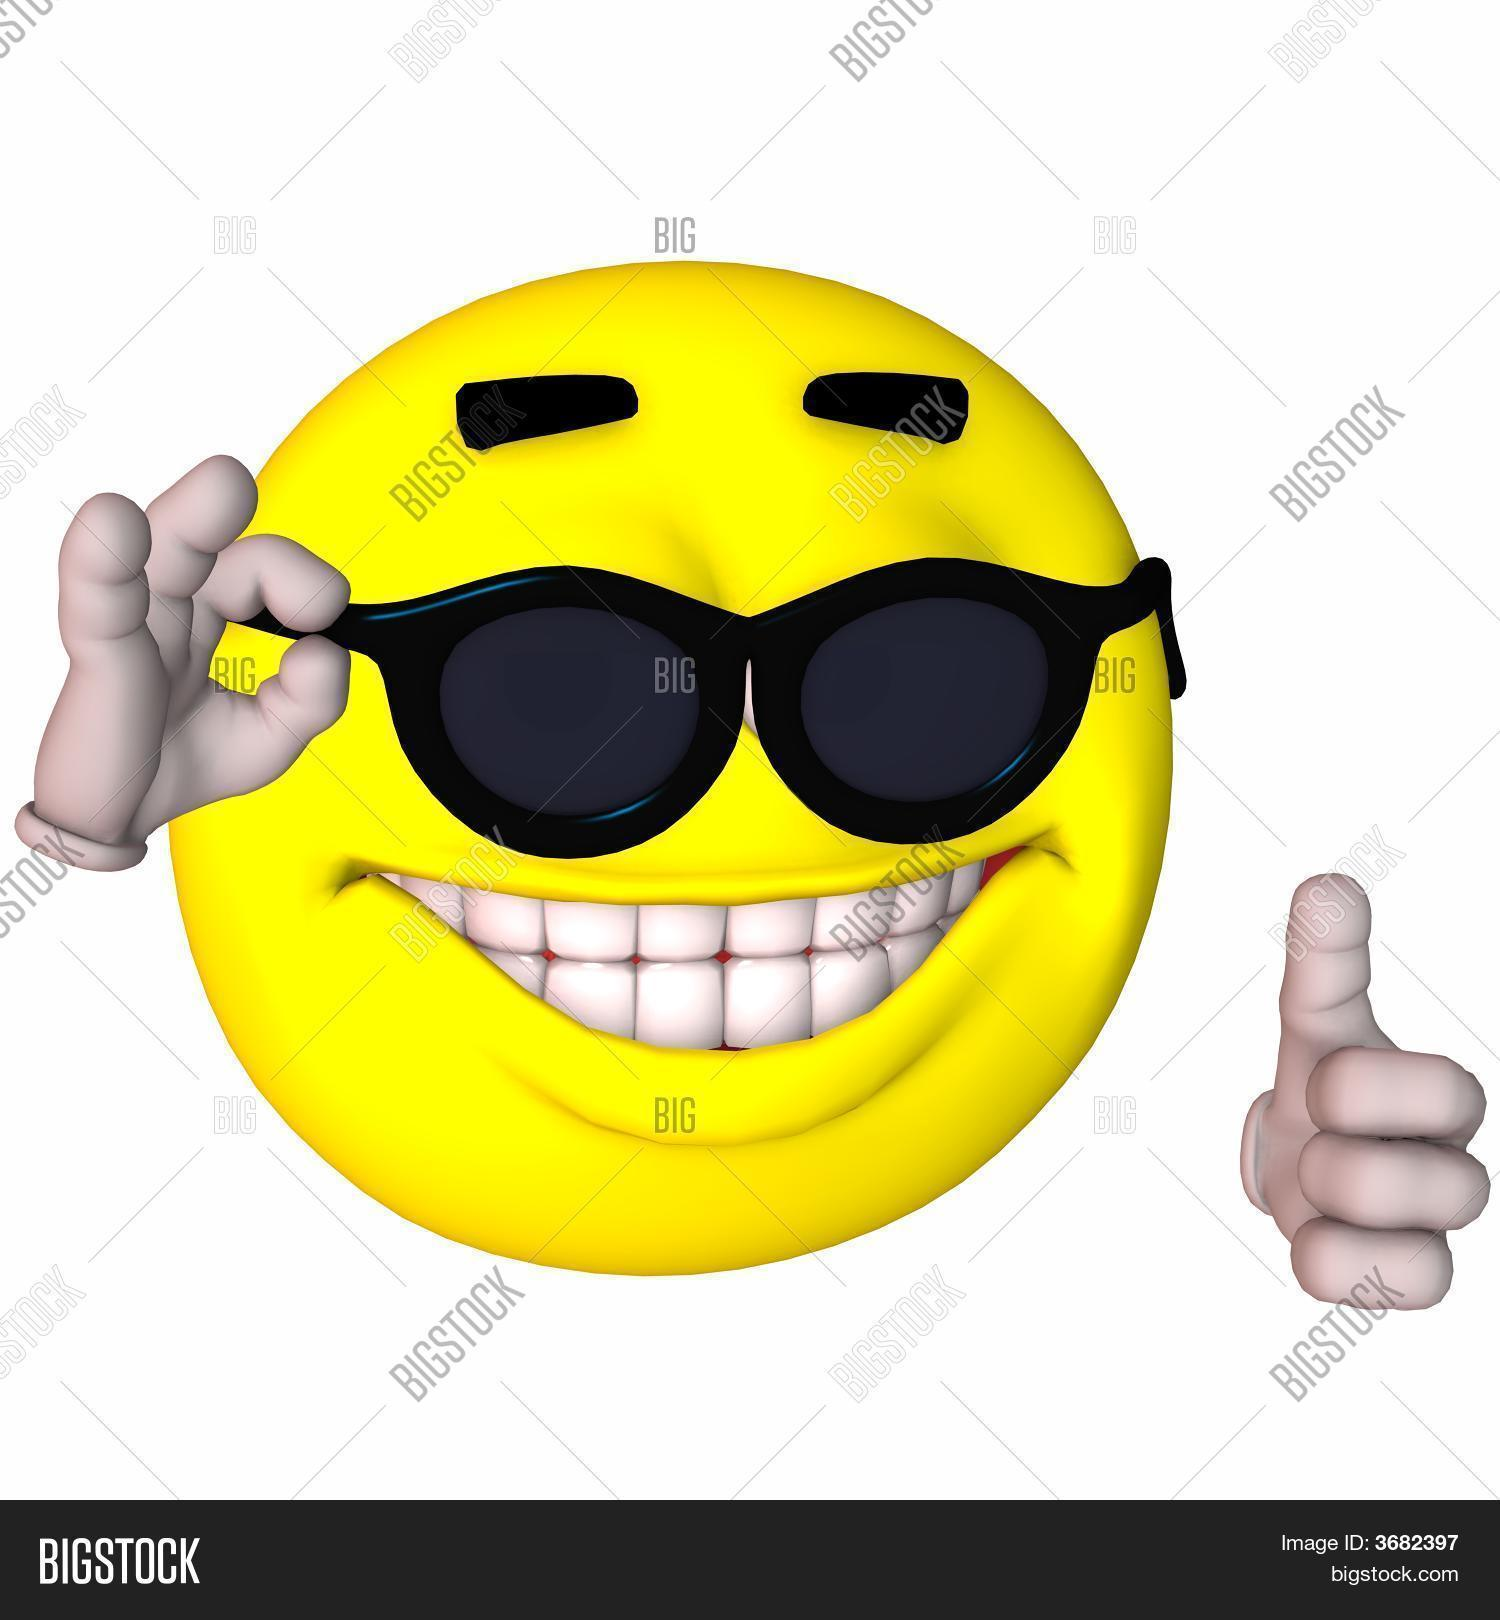 smiley face icon images, illustrations & vectors (free) - bigstock